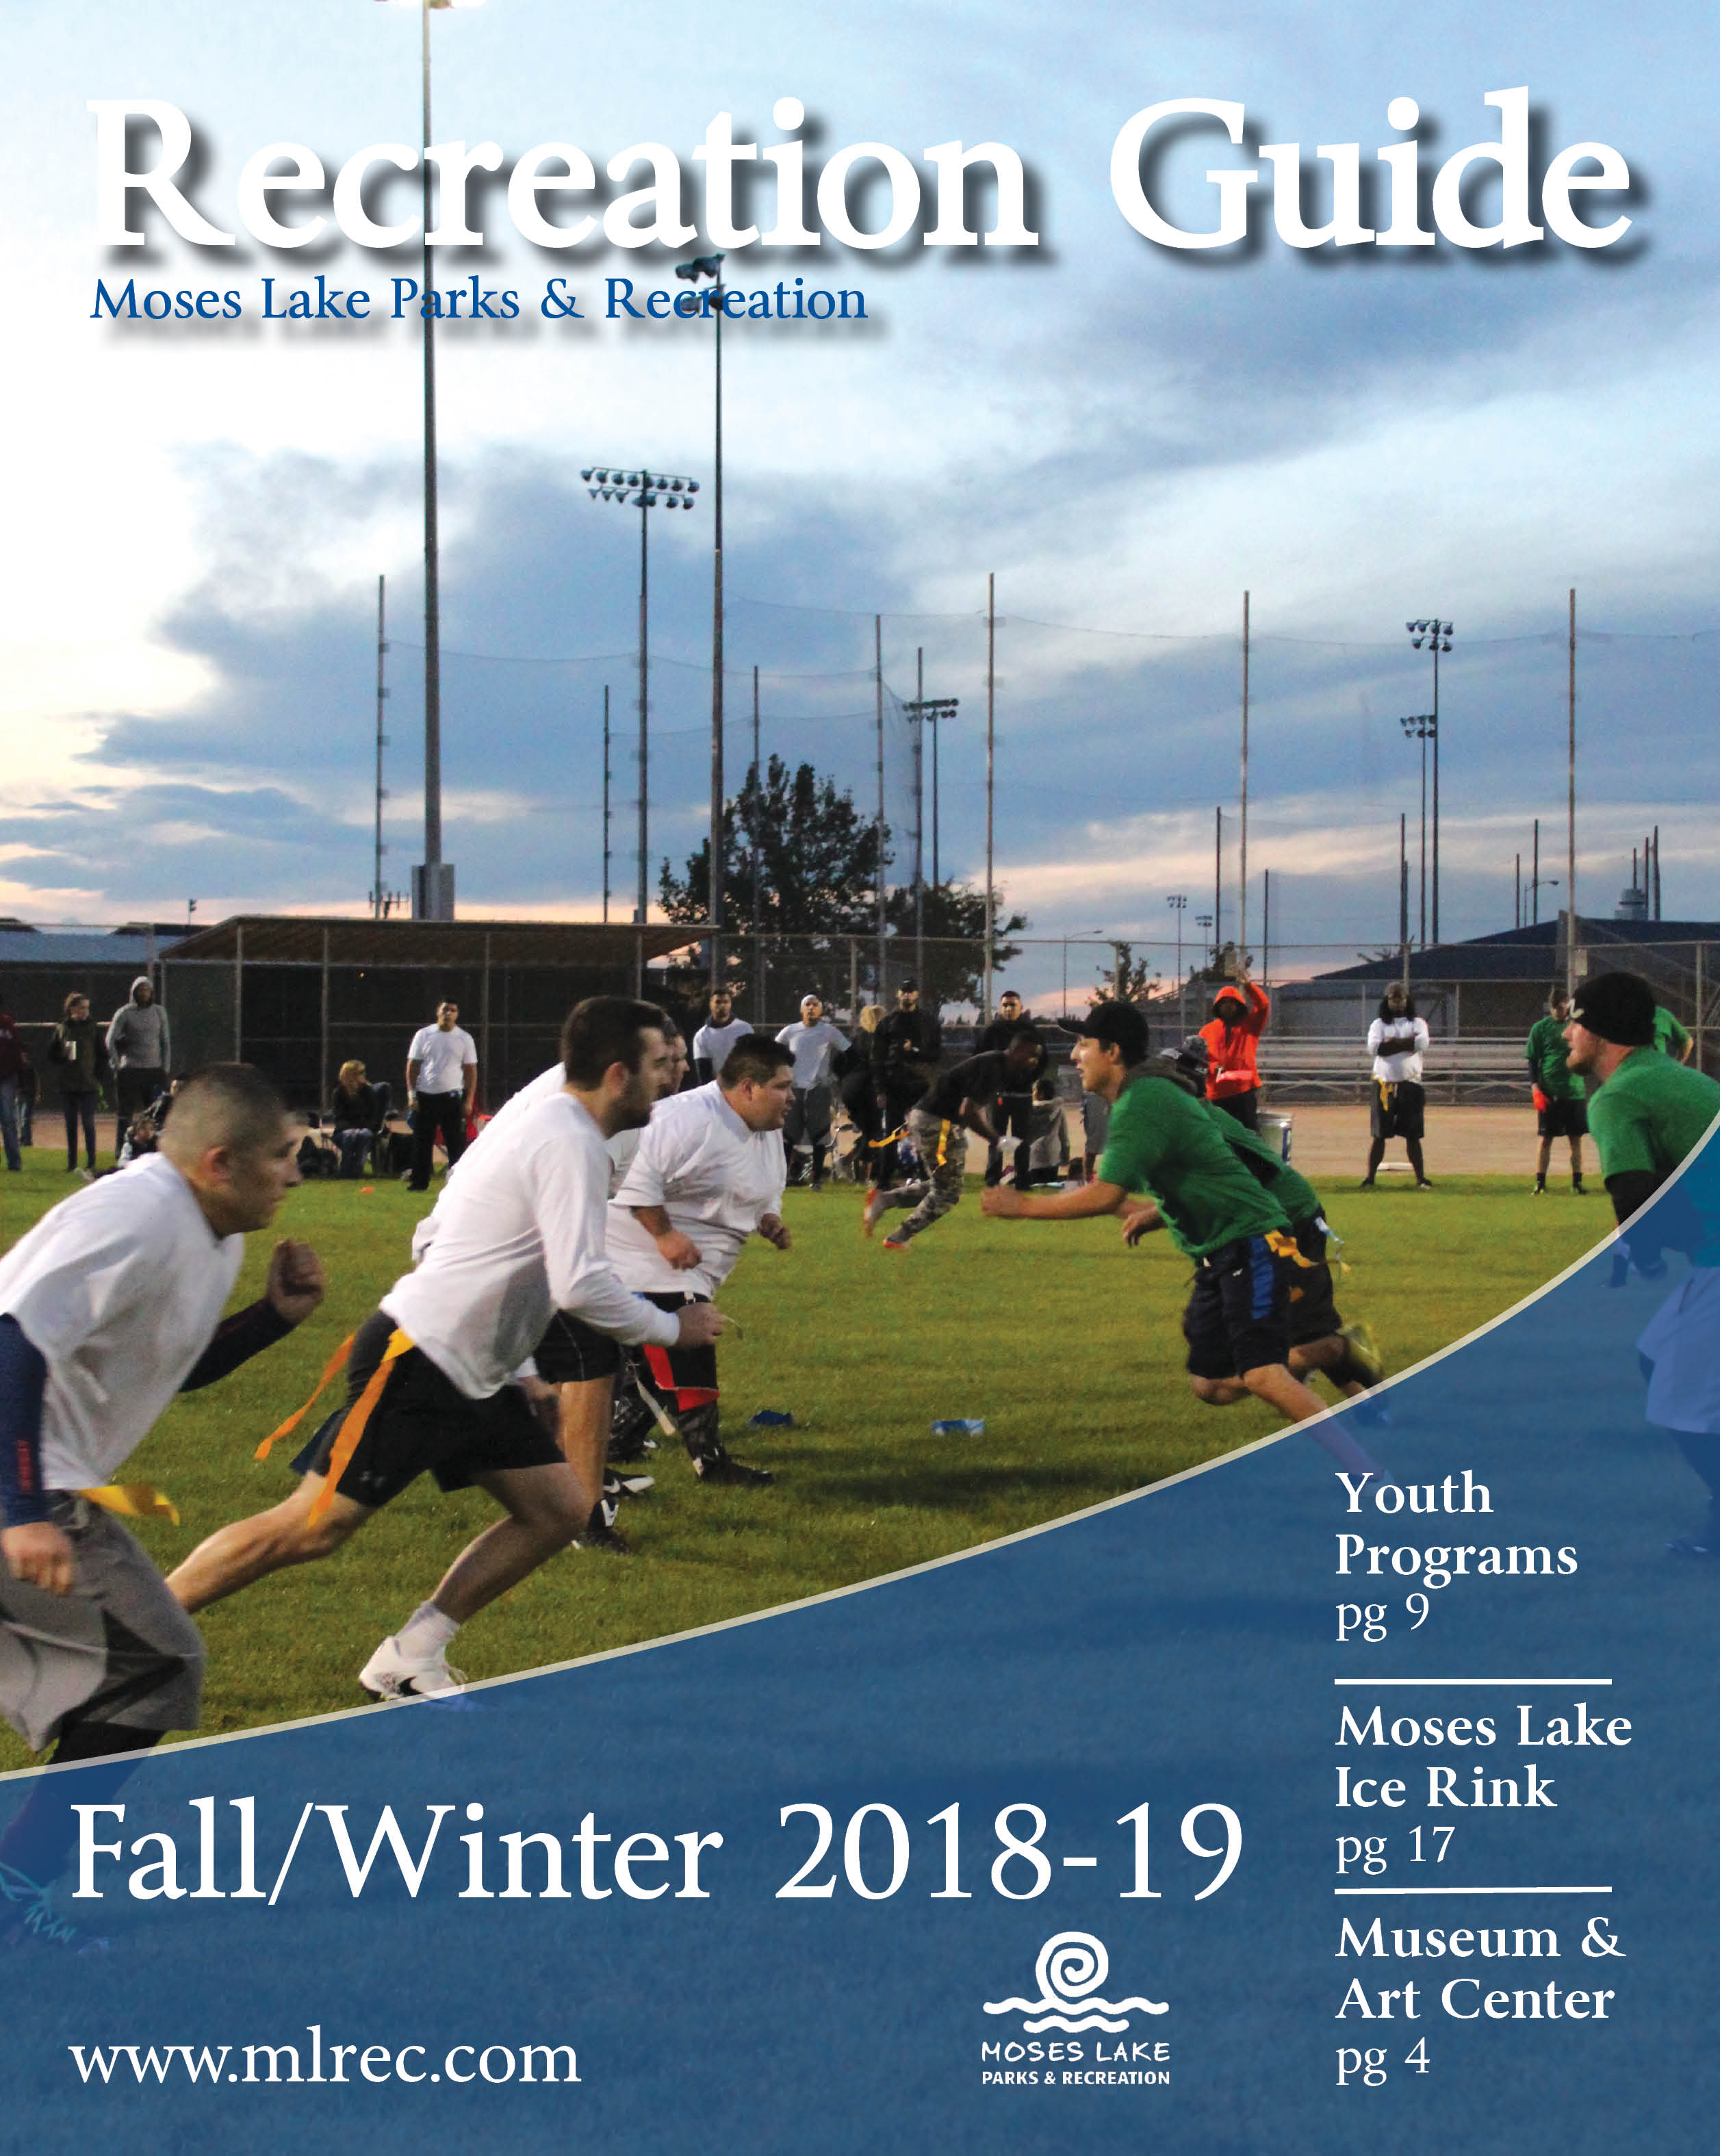 2018-19 Winter Covers 2.jpg